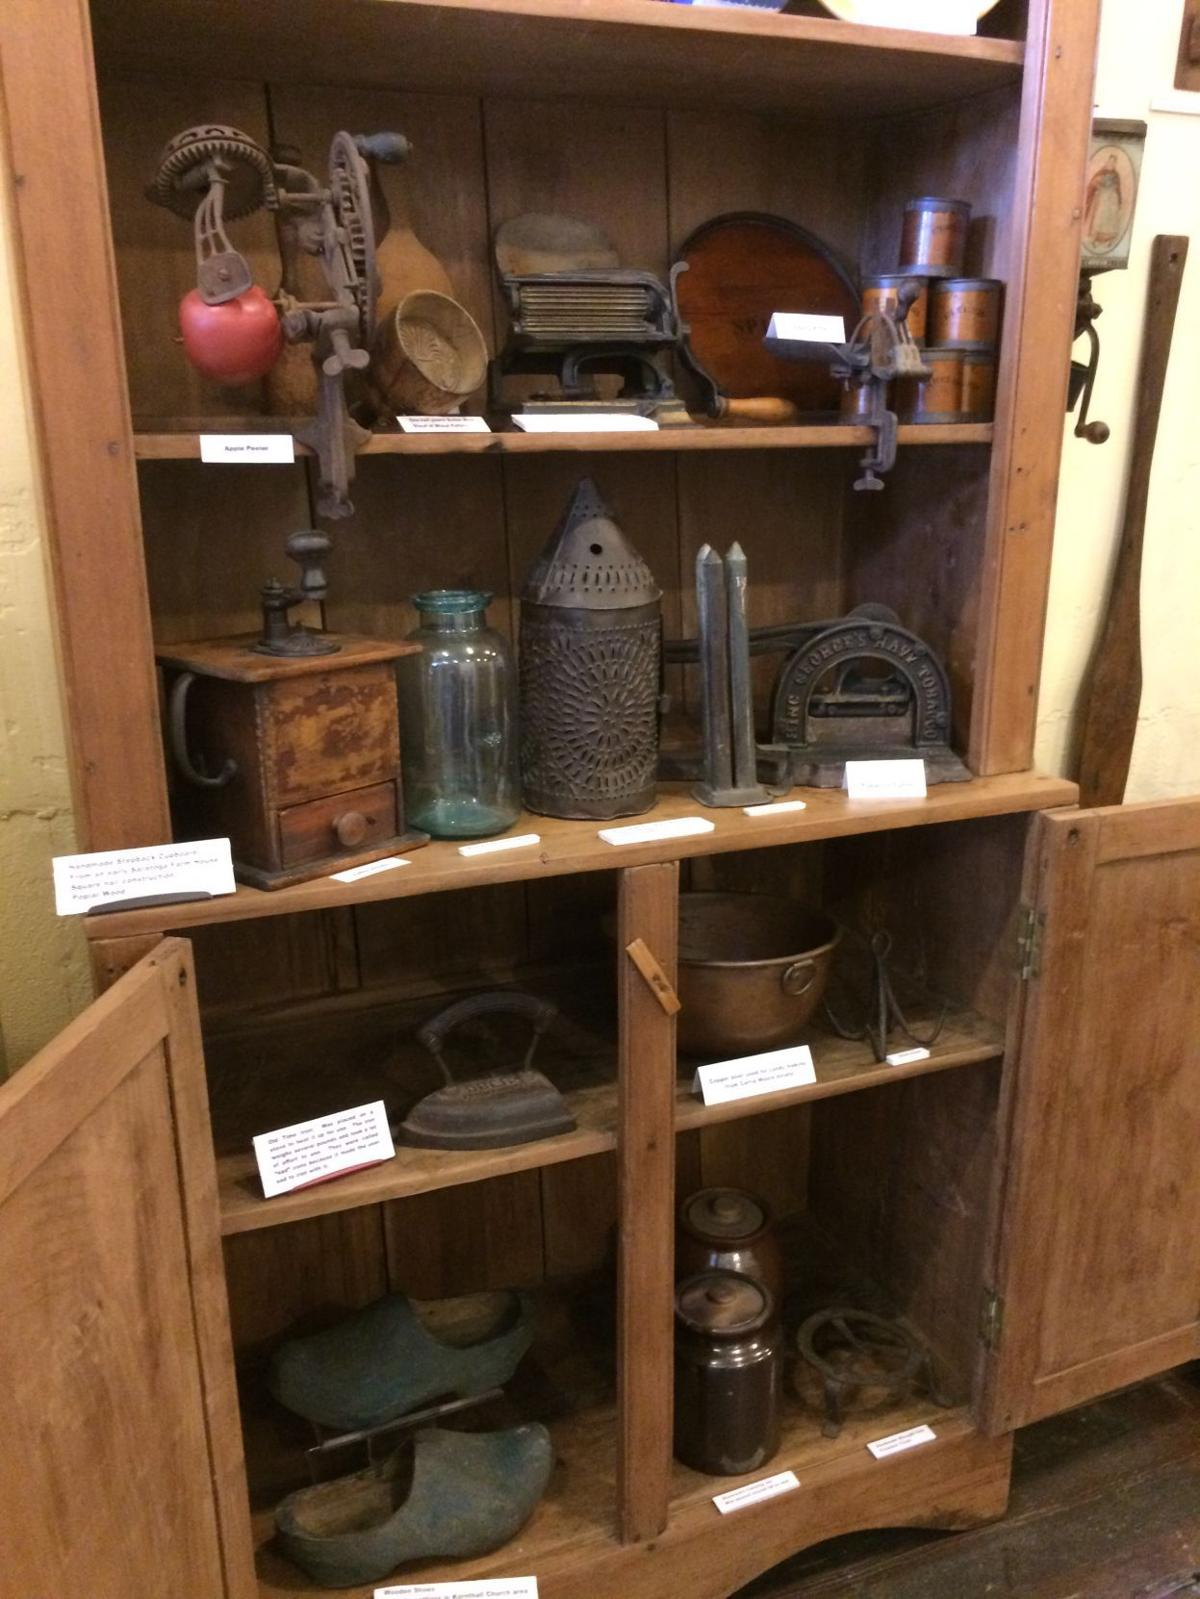 Union County Bicentennial: Early tools and accoutrements